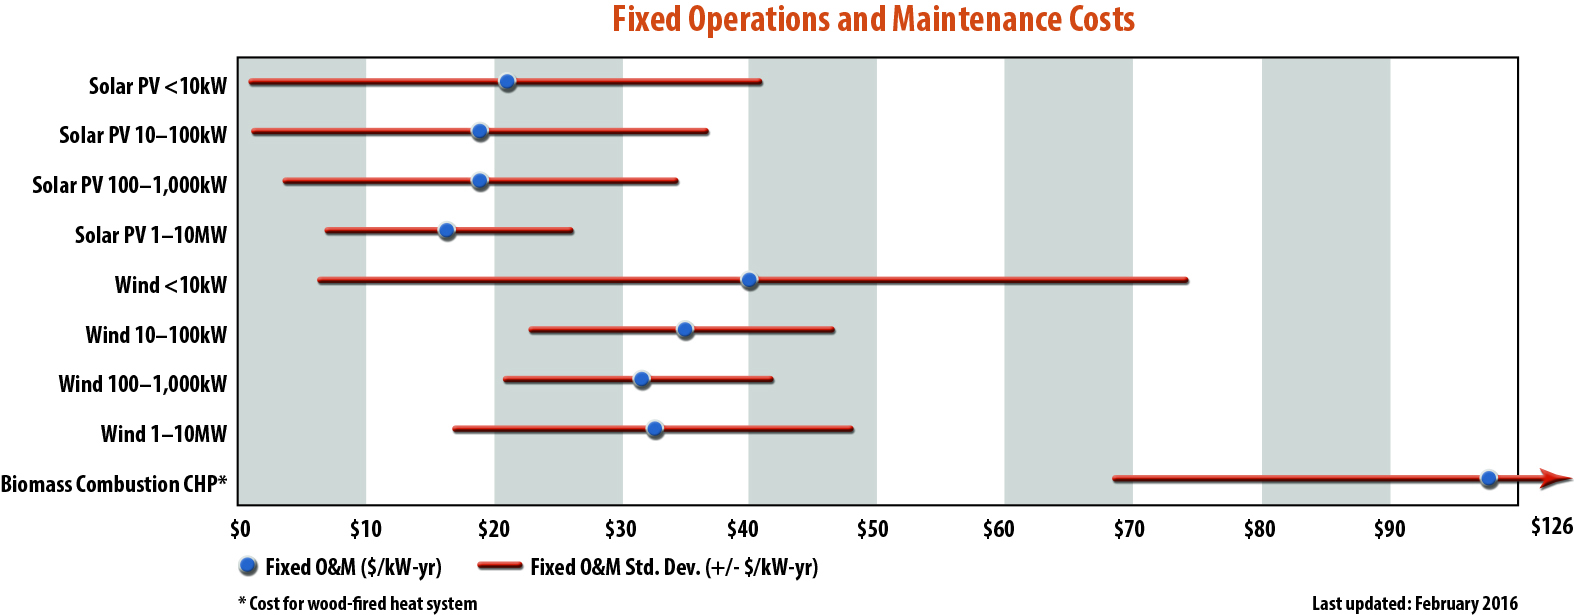 Chart showing average fixed operations and maintenance cost of distributed generation energy technologies.